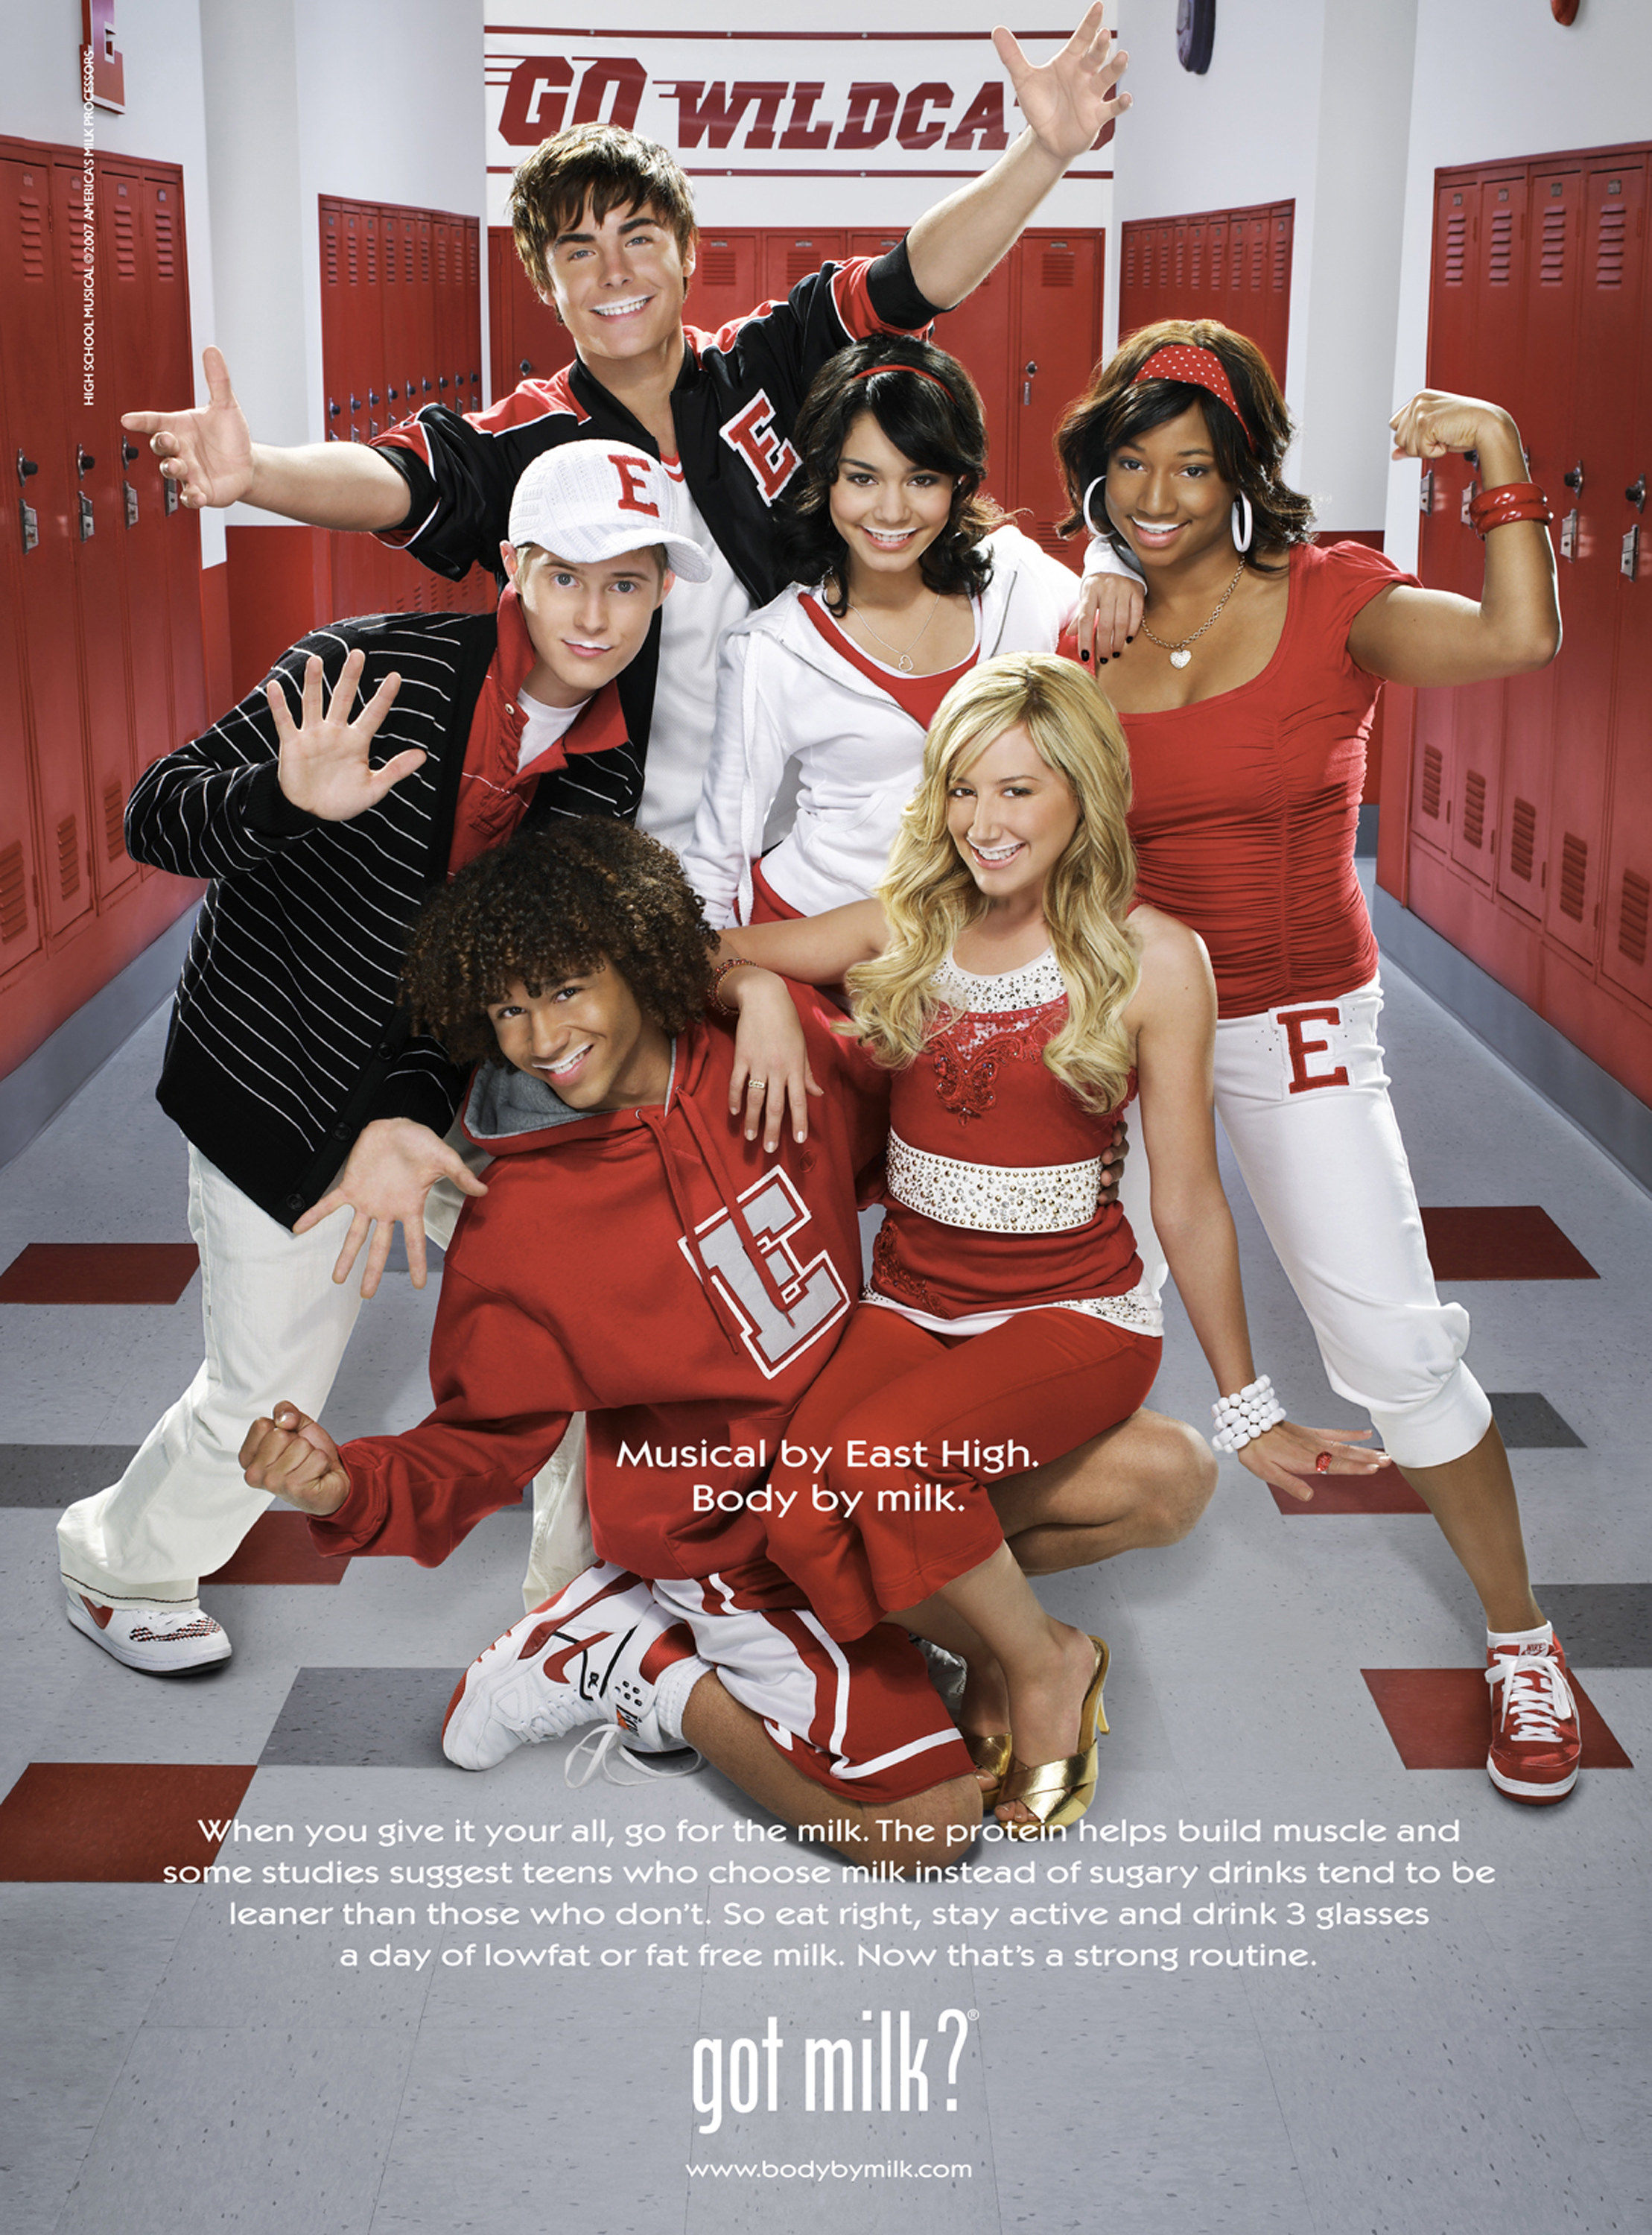 Got Milk? ad featuring the cast of High School Musical